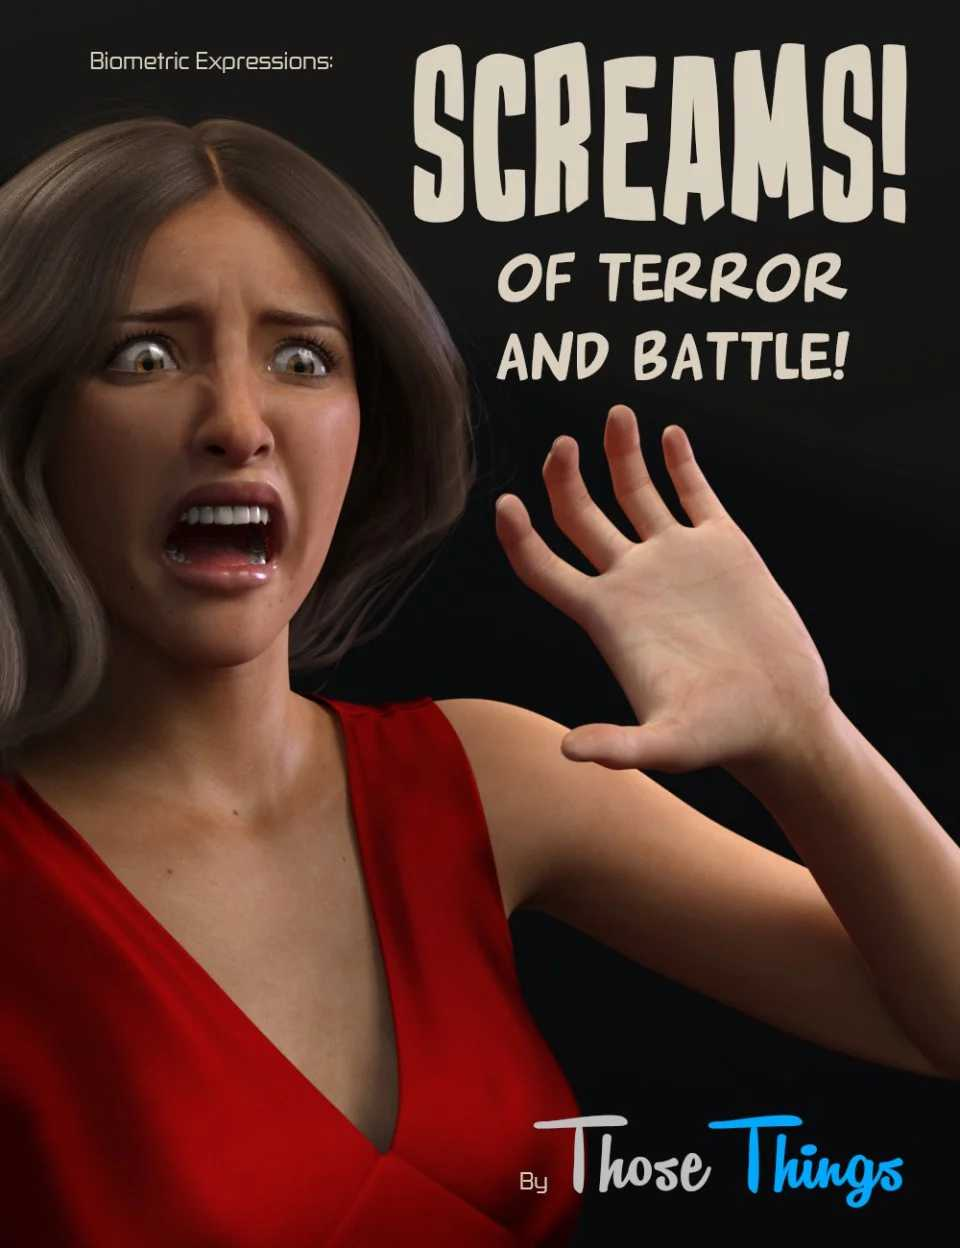 Biometric Expressions: Screams of Terror and Battle! for Genesis 3 Female(s)